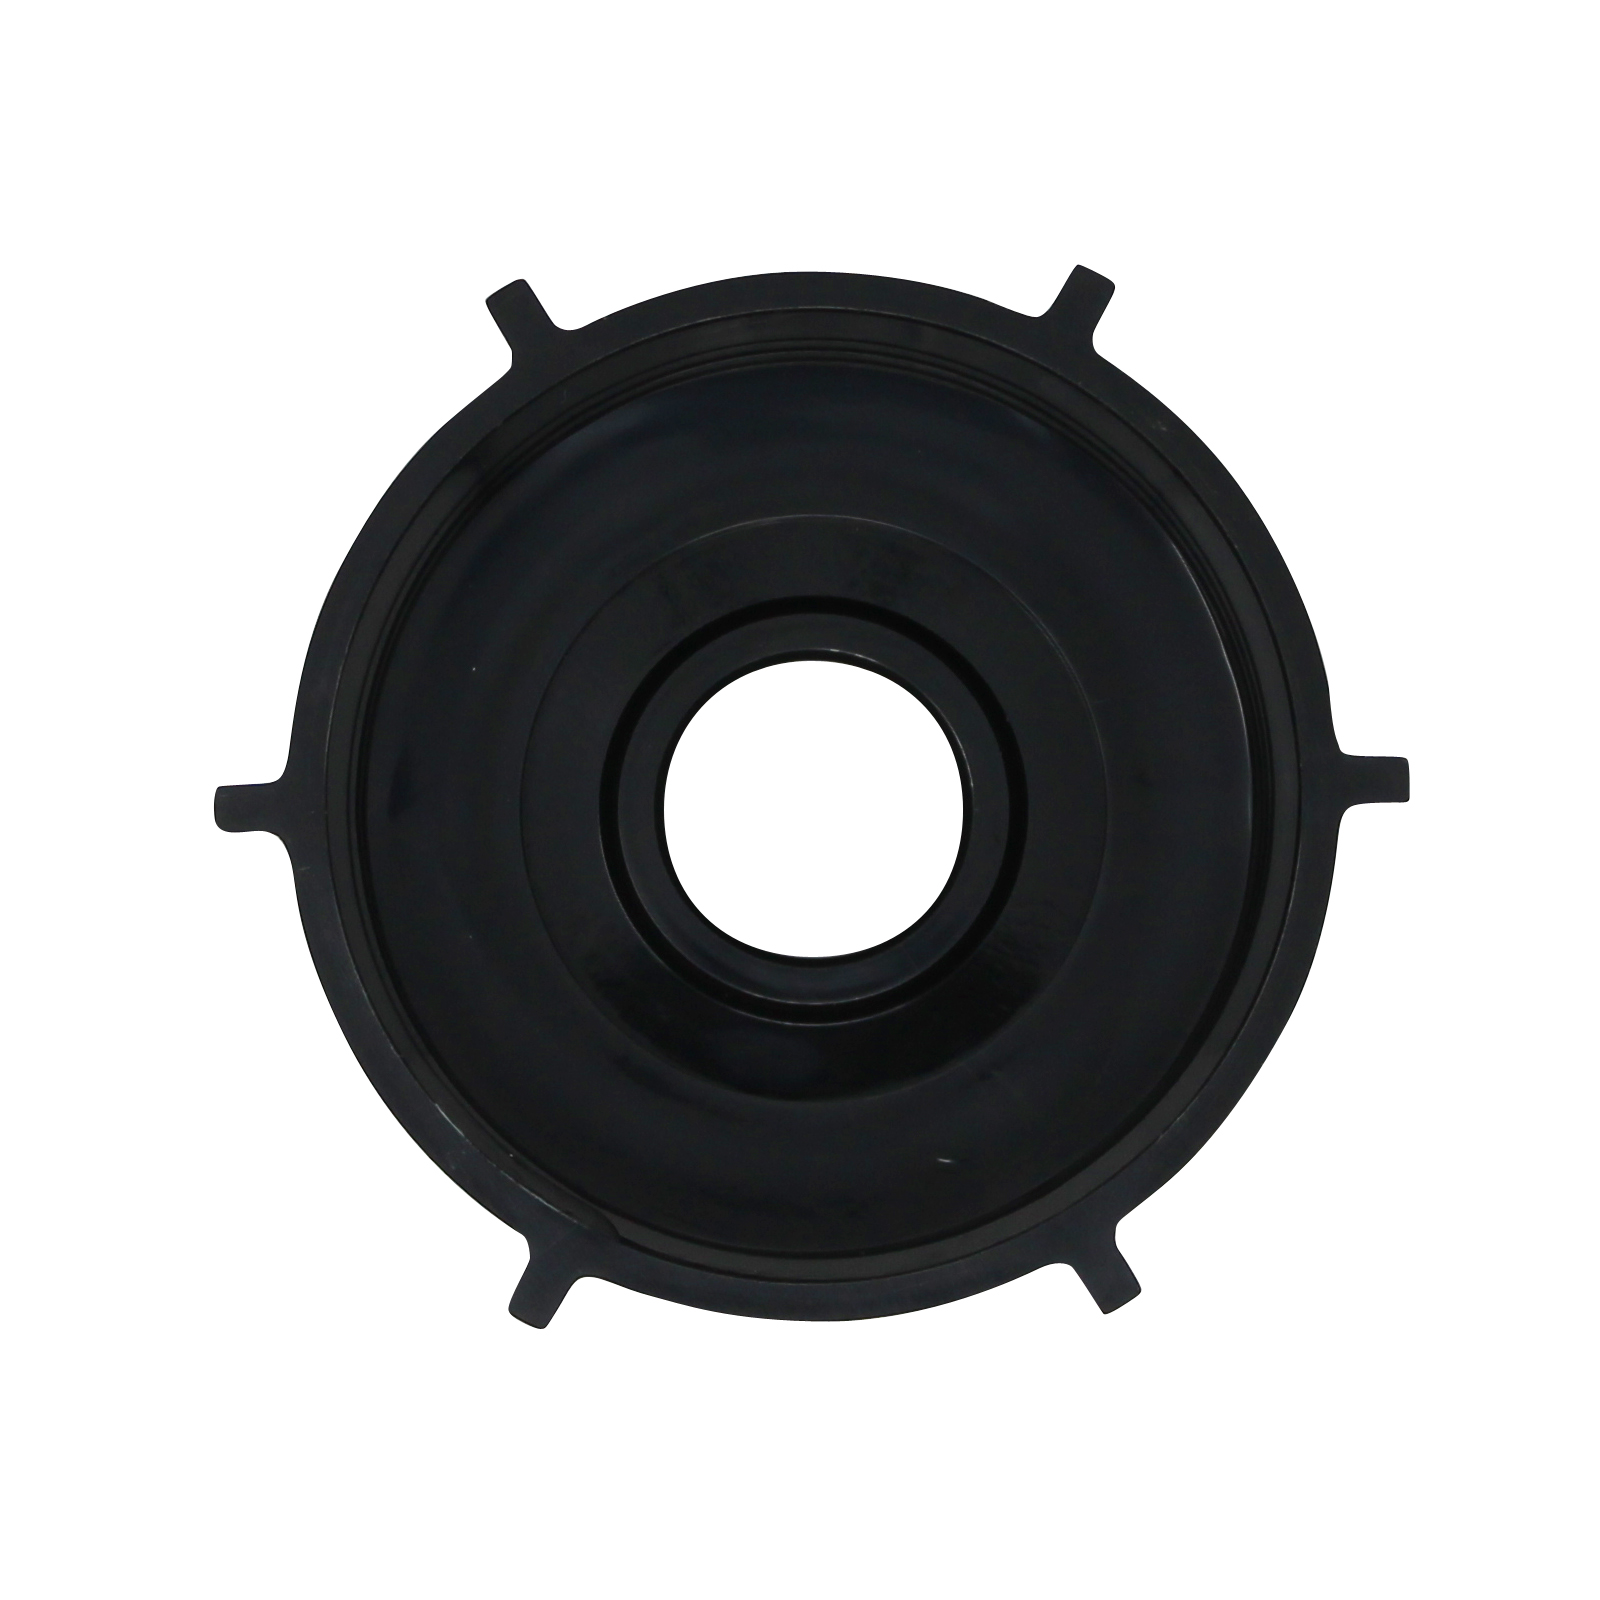 Replacement Oster 148381-000-090 Blender Jar Bottom Cap for Oster BCCG08-C 8 Speed Blender - image 2 of 3